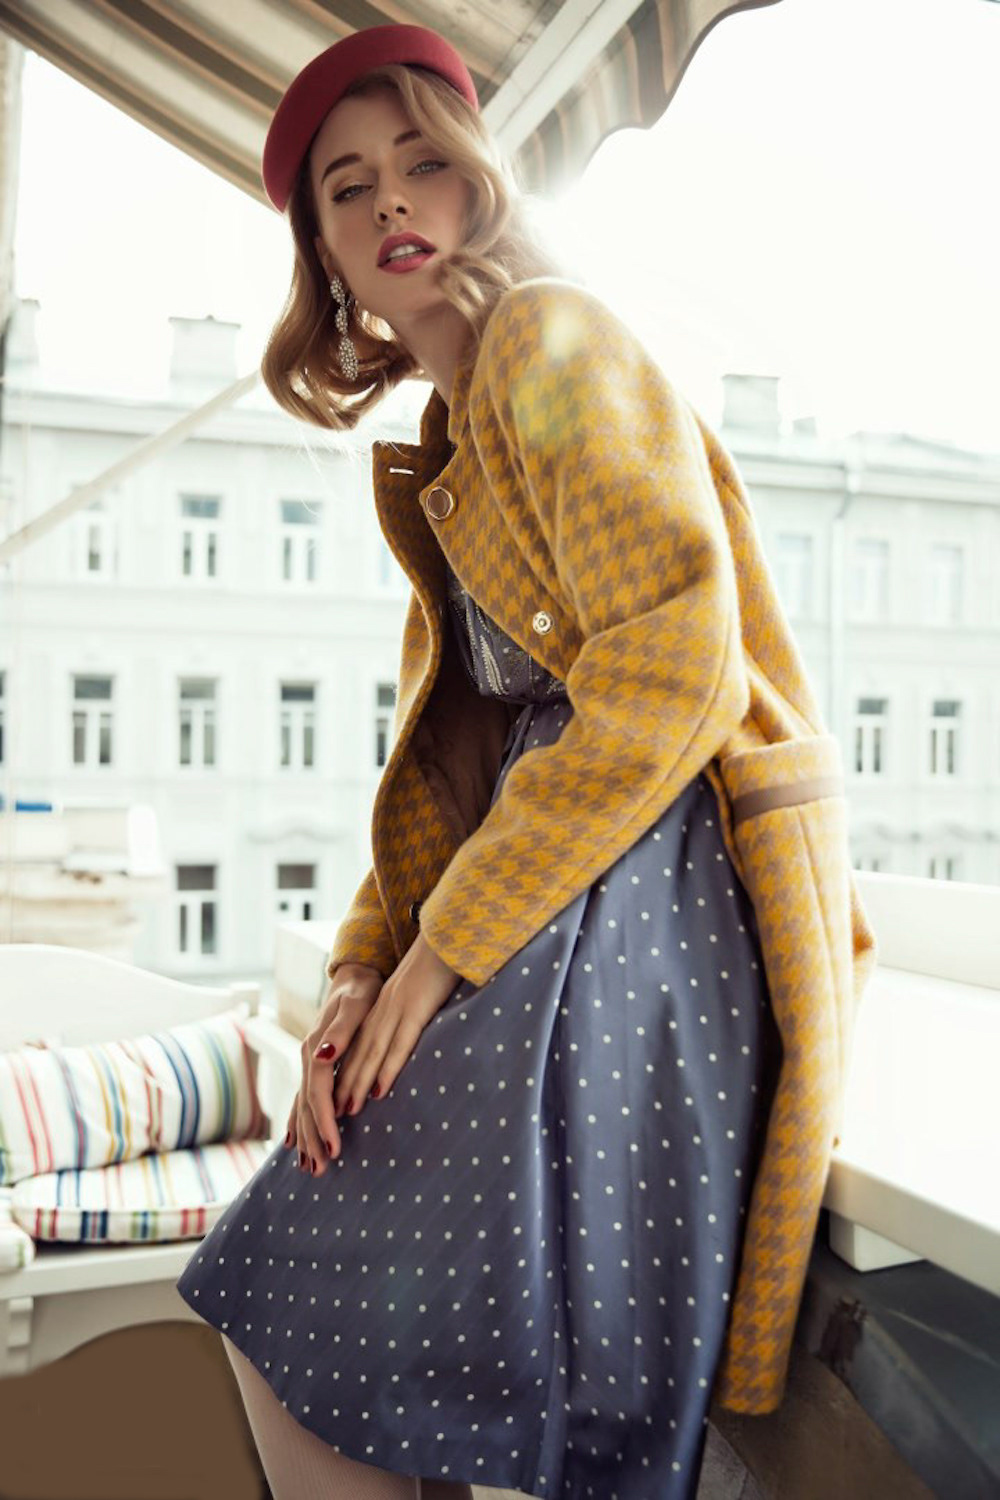 Style of 70th. Yellow coat and blue dress in dotted pattern for spring-summer season